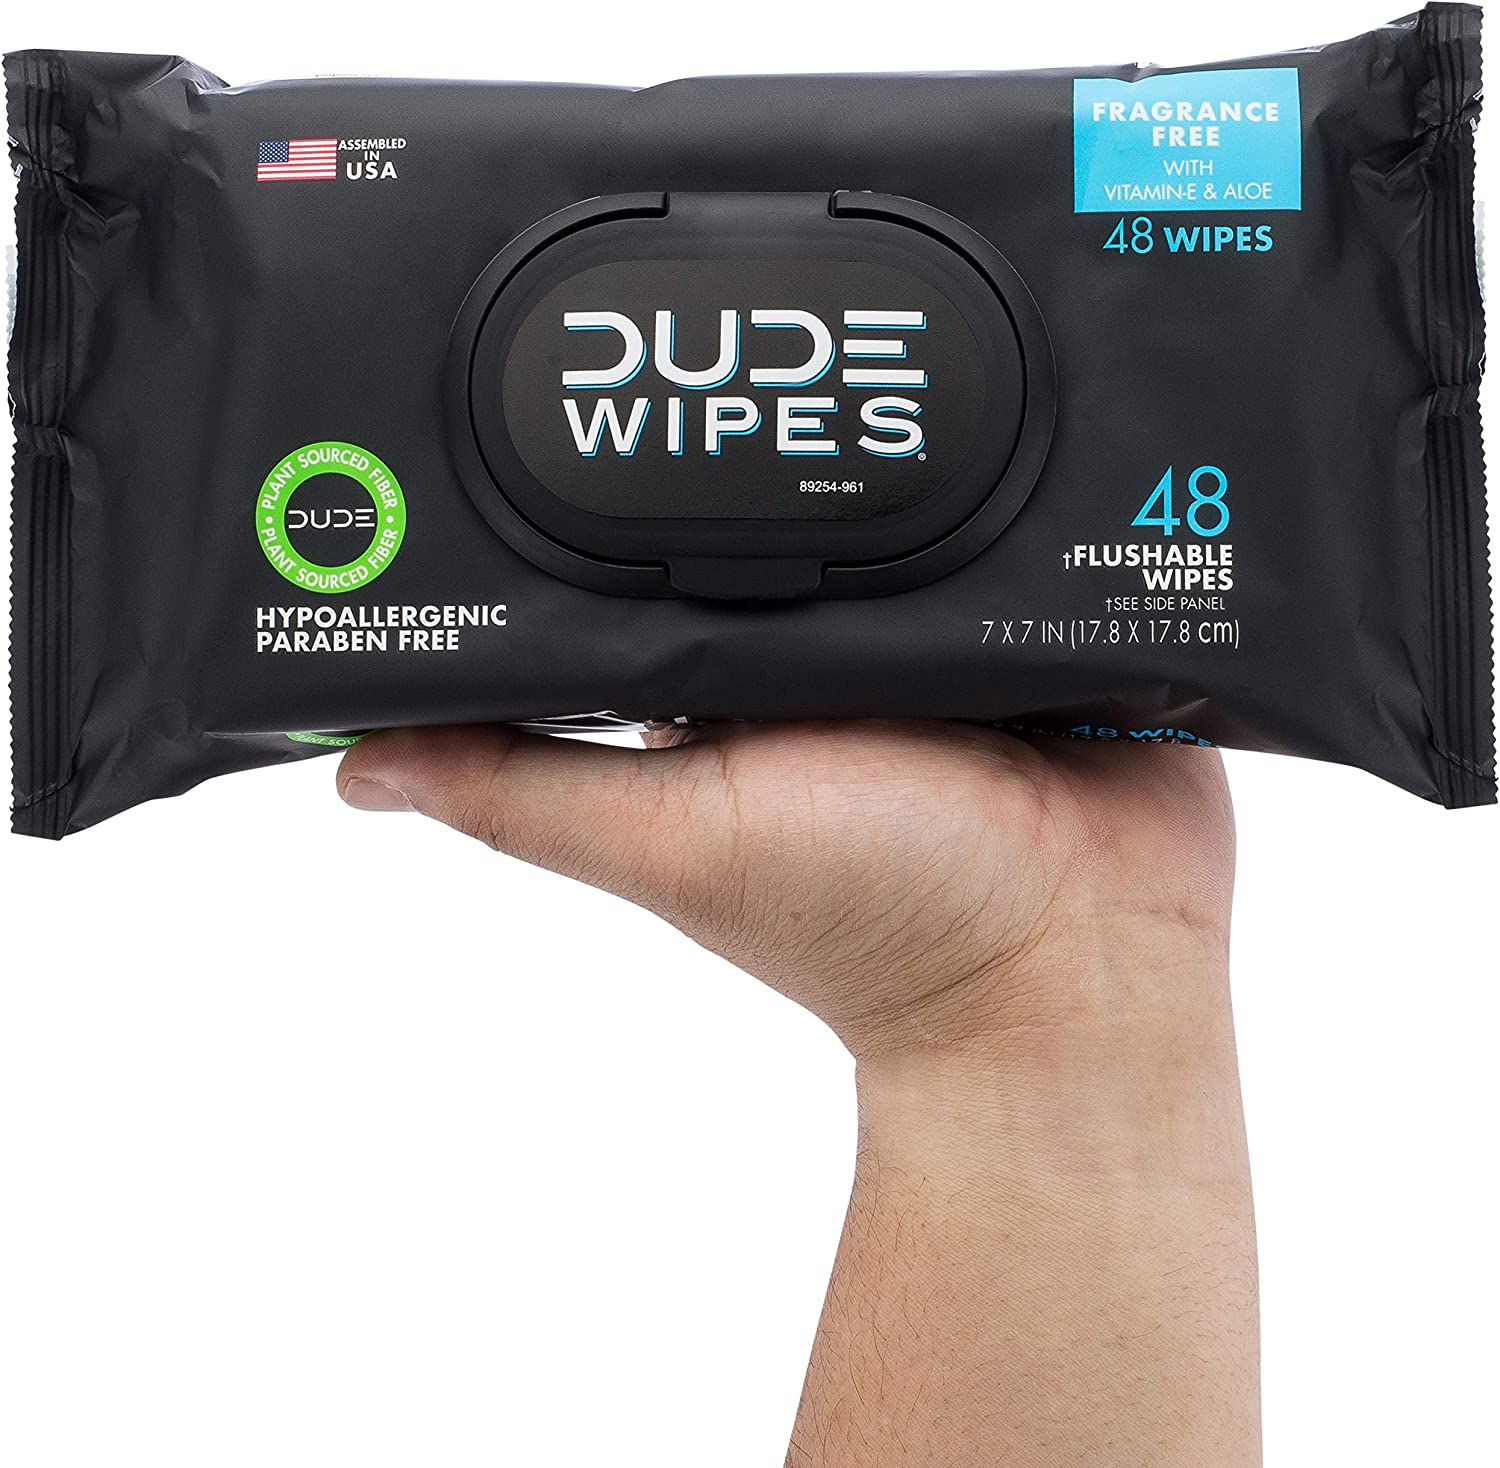 DUDE Wipes Flushable Wipes Dispenser (6 Packs, 48 Wipes Each), Unscented Wet Wipes with Vitamin-E & Aloe for at-Home Use, Septic and Sewer Safe: Computers & Accessories